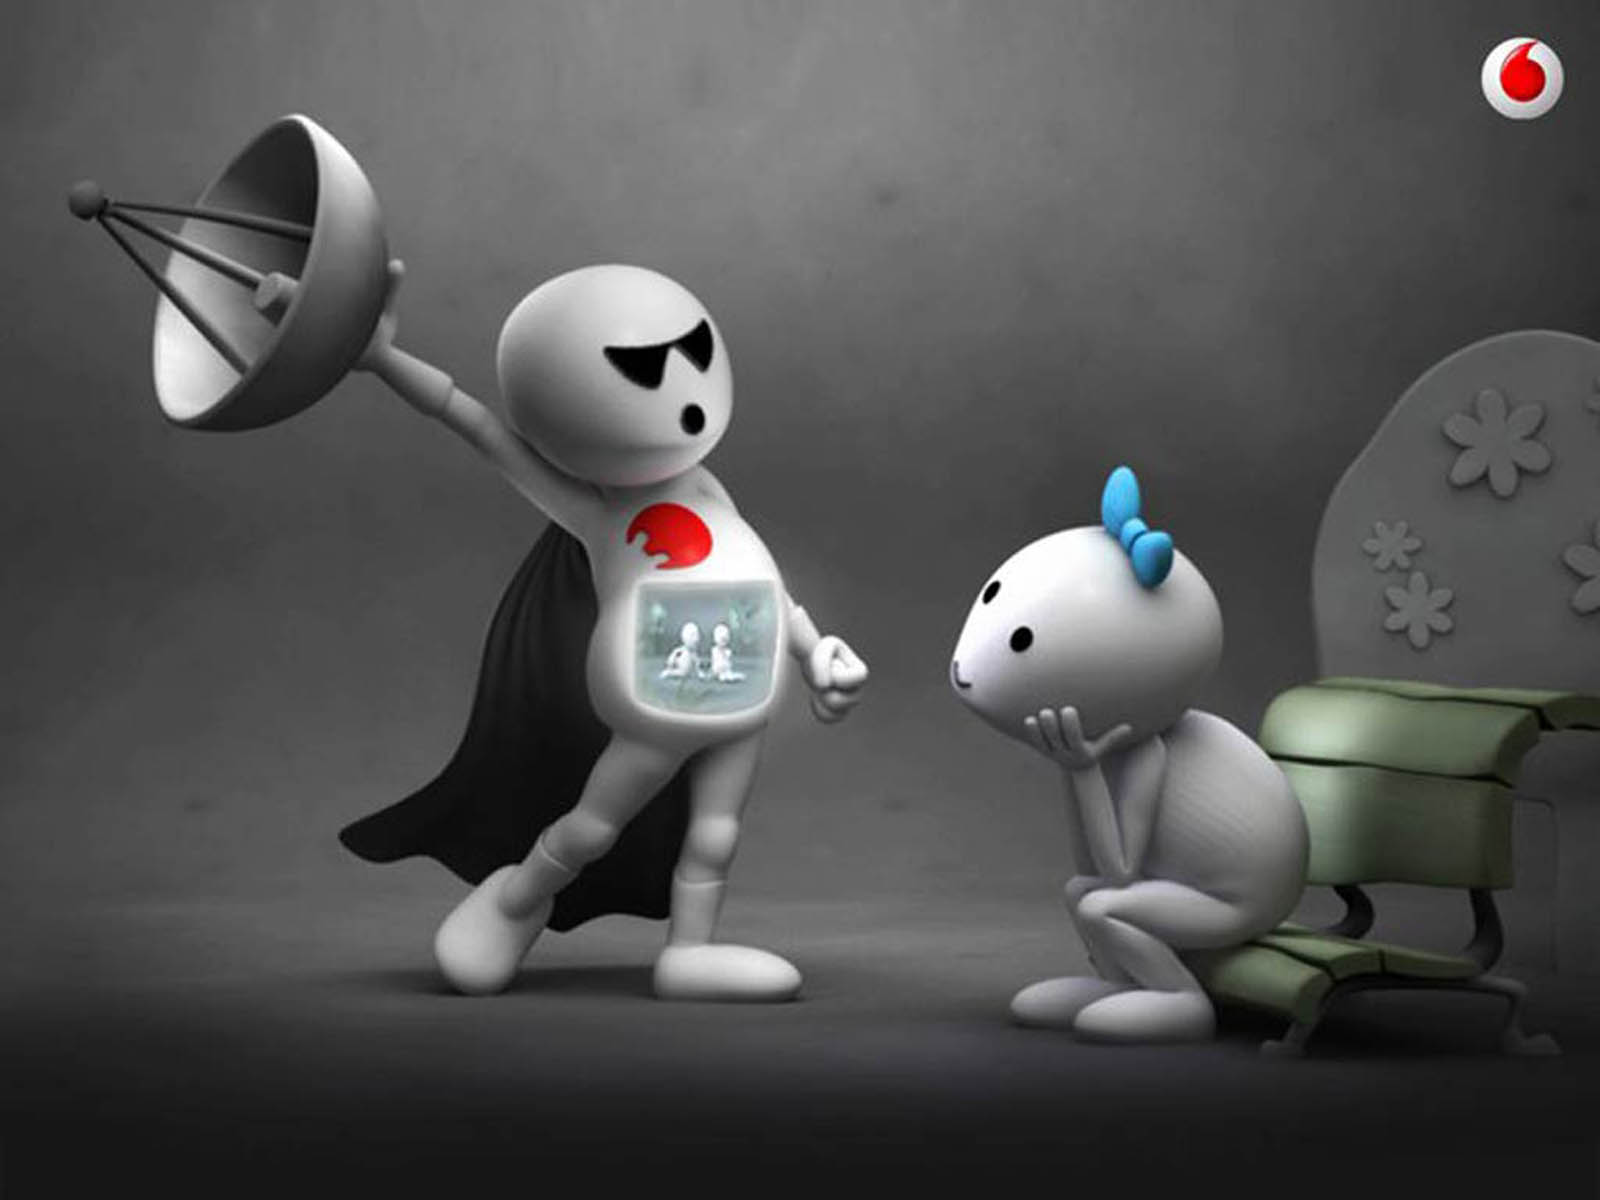 wallpapers: Vodafone Zoozoo Wallpapers